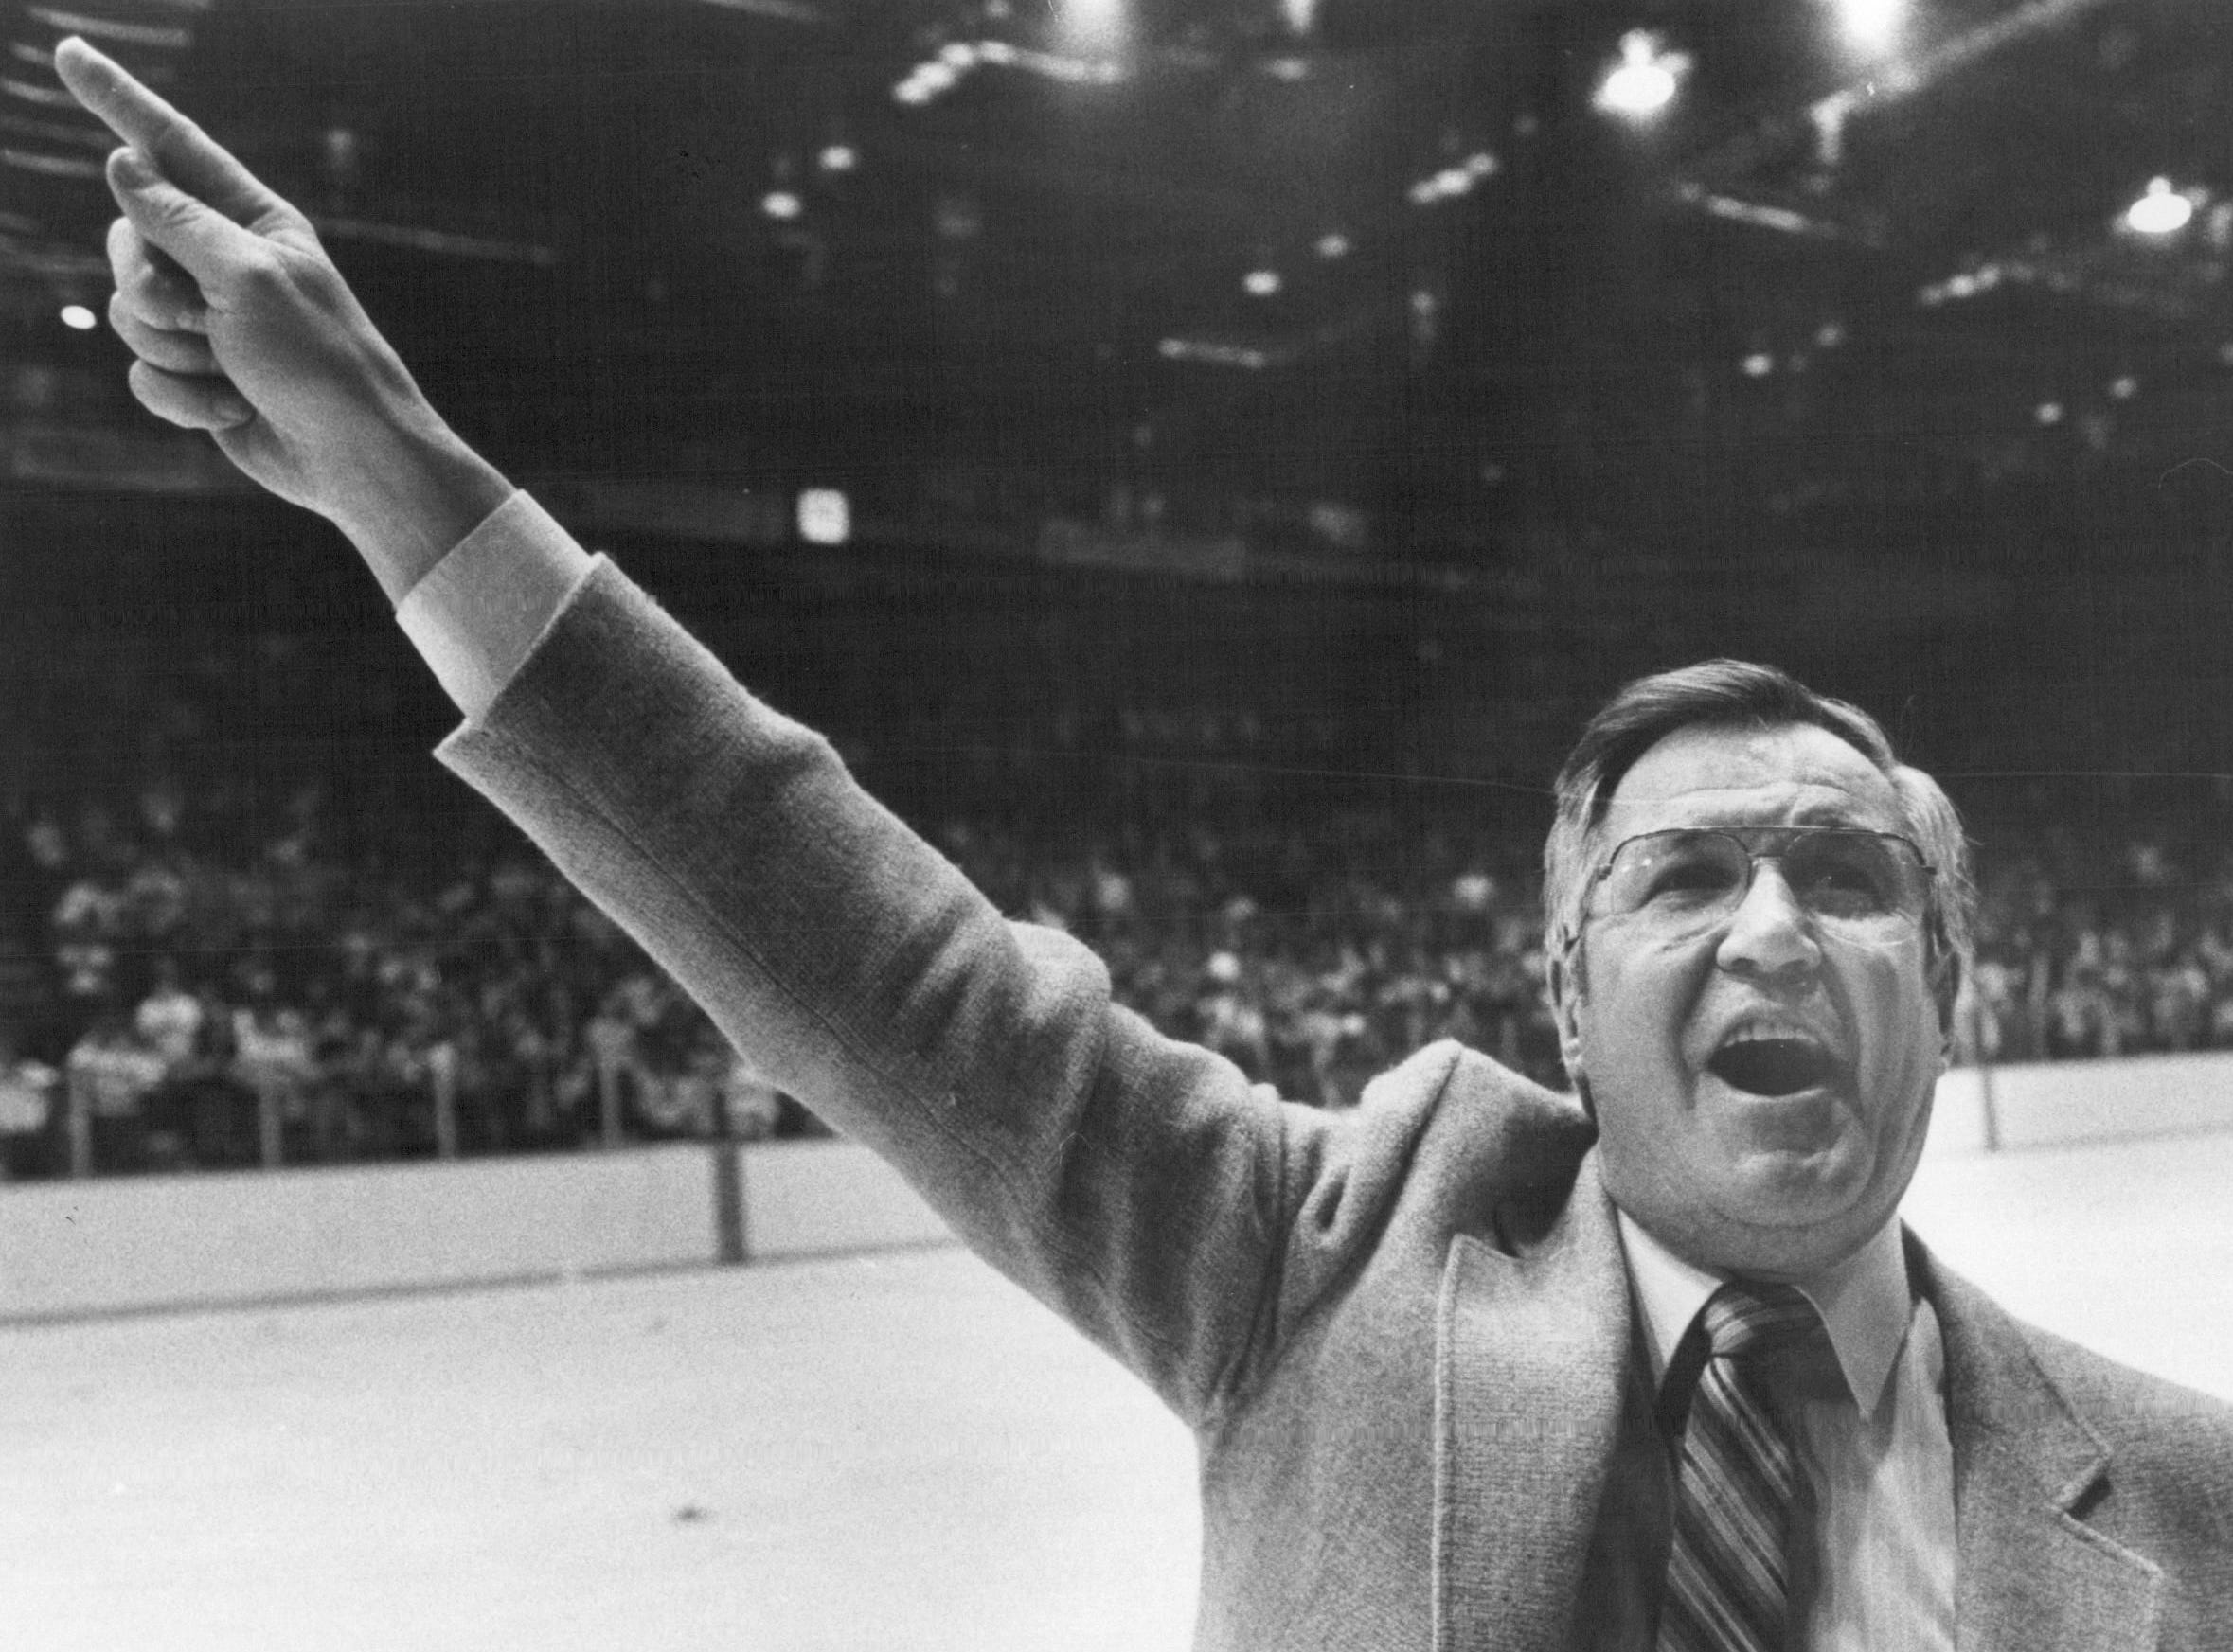 Joe Crozier points to the banners as he exits the War Memorial ice following a Calder Cup playoff game in 1984. Pointing to the banners became a ritual during the team's 1984 playoff run.